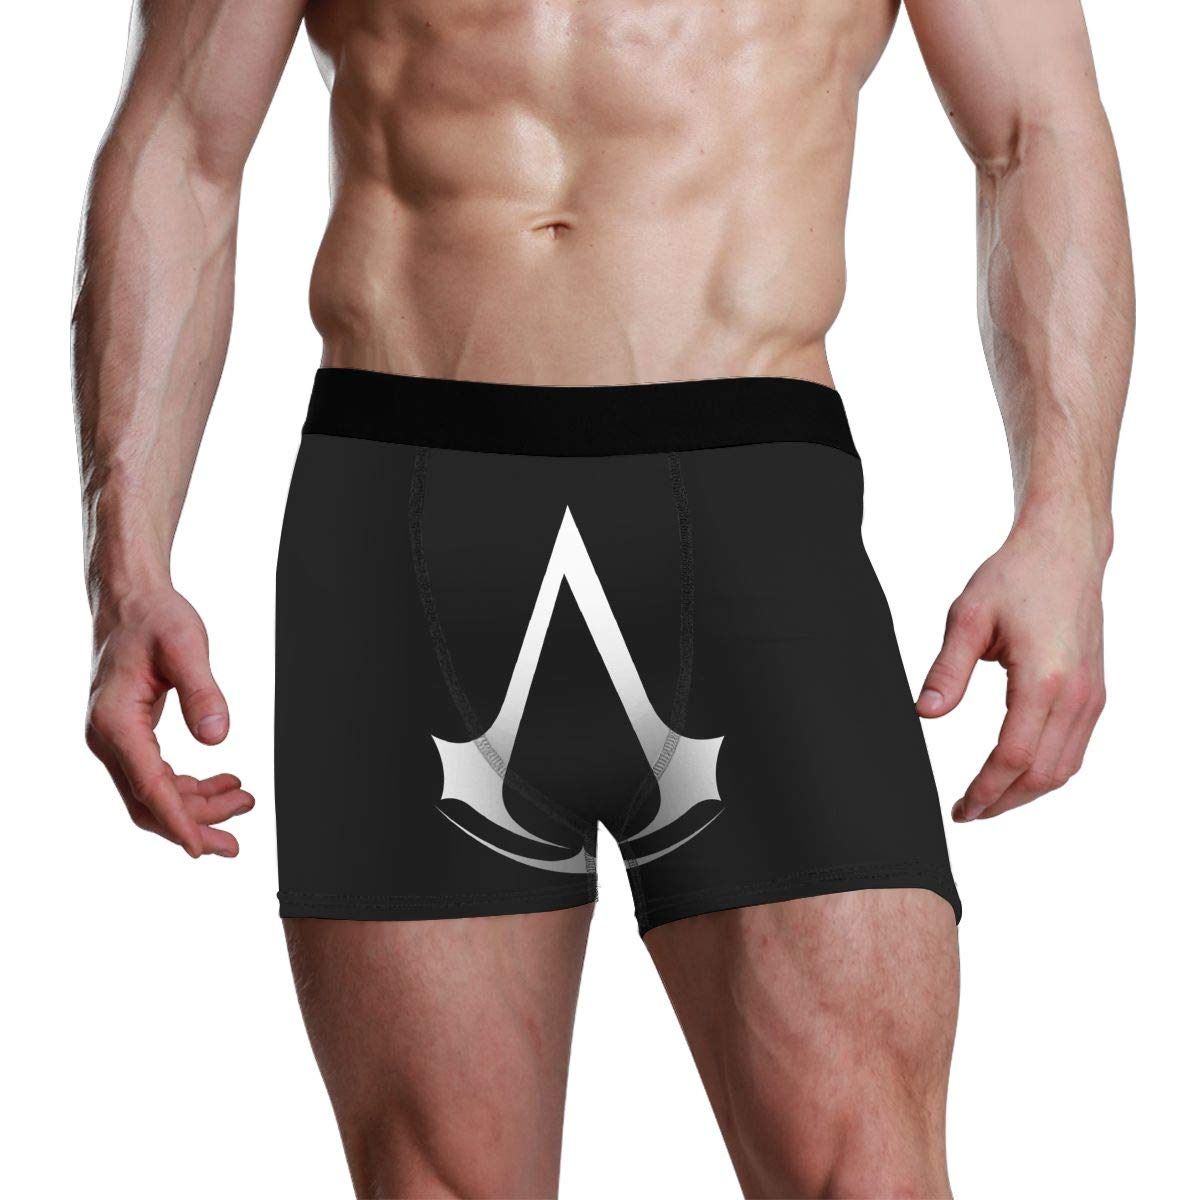 Assassin Creed Video Game Mens Underwear Soft Classic Boxer Briefs Stretch Trunks